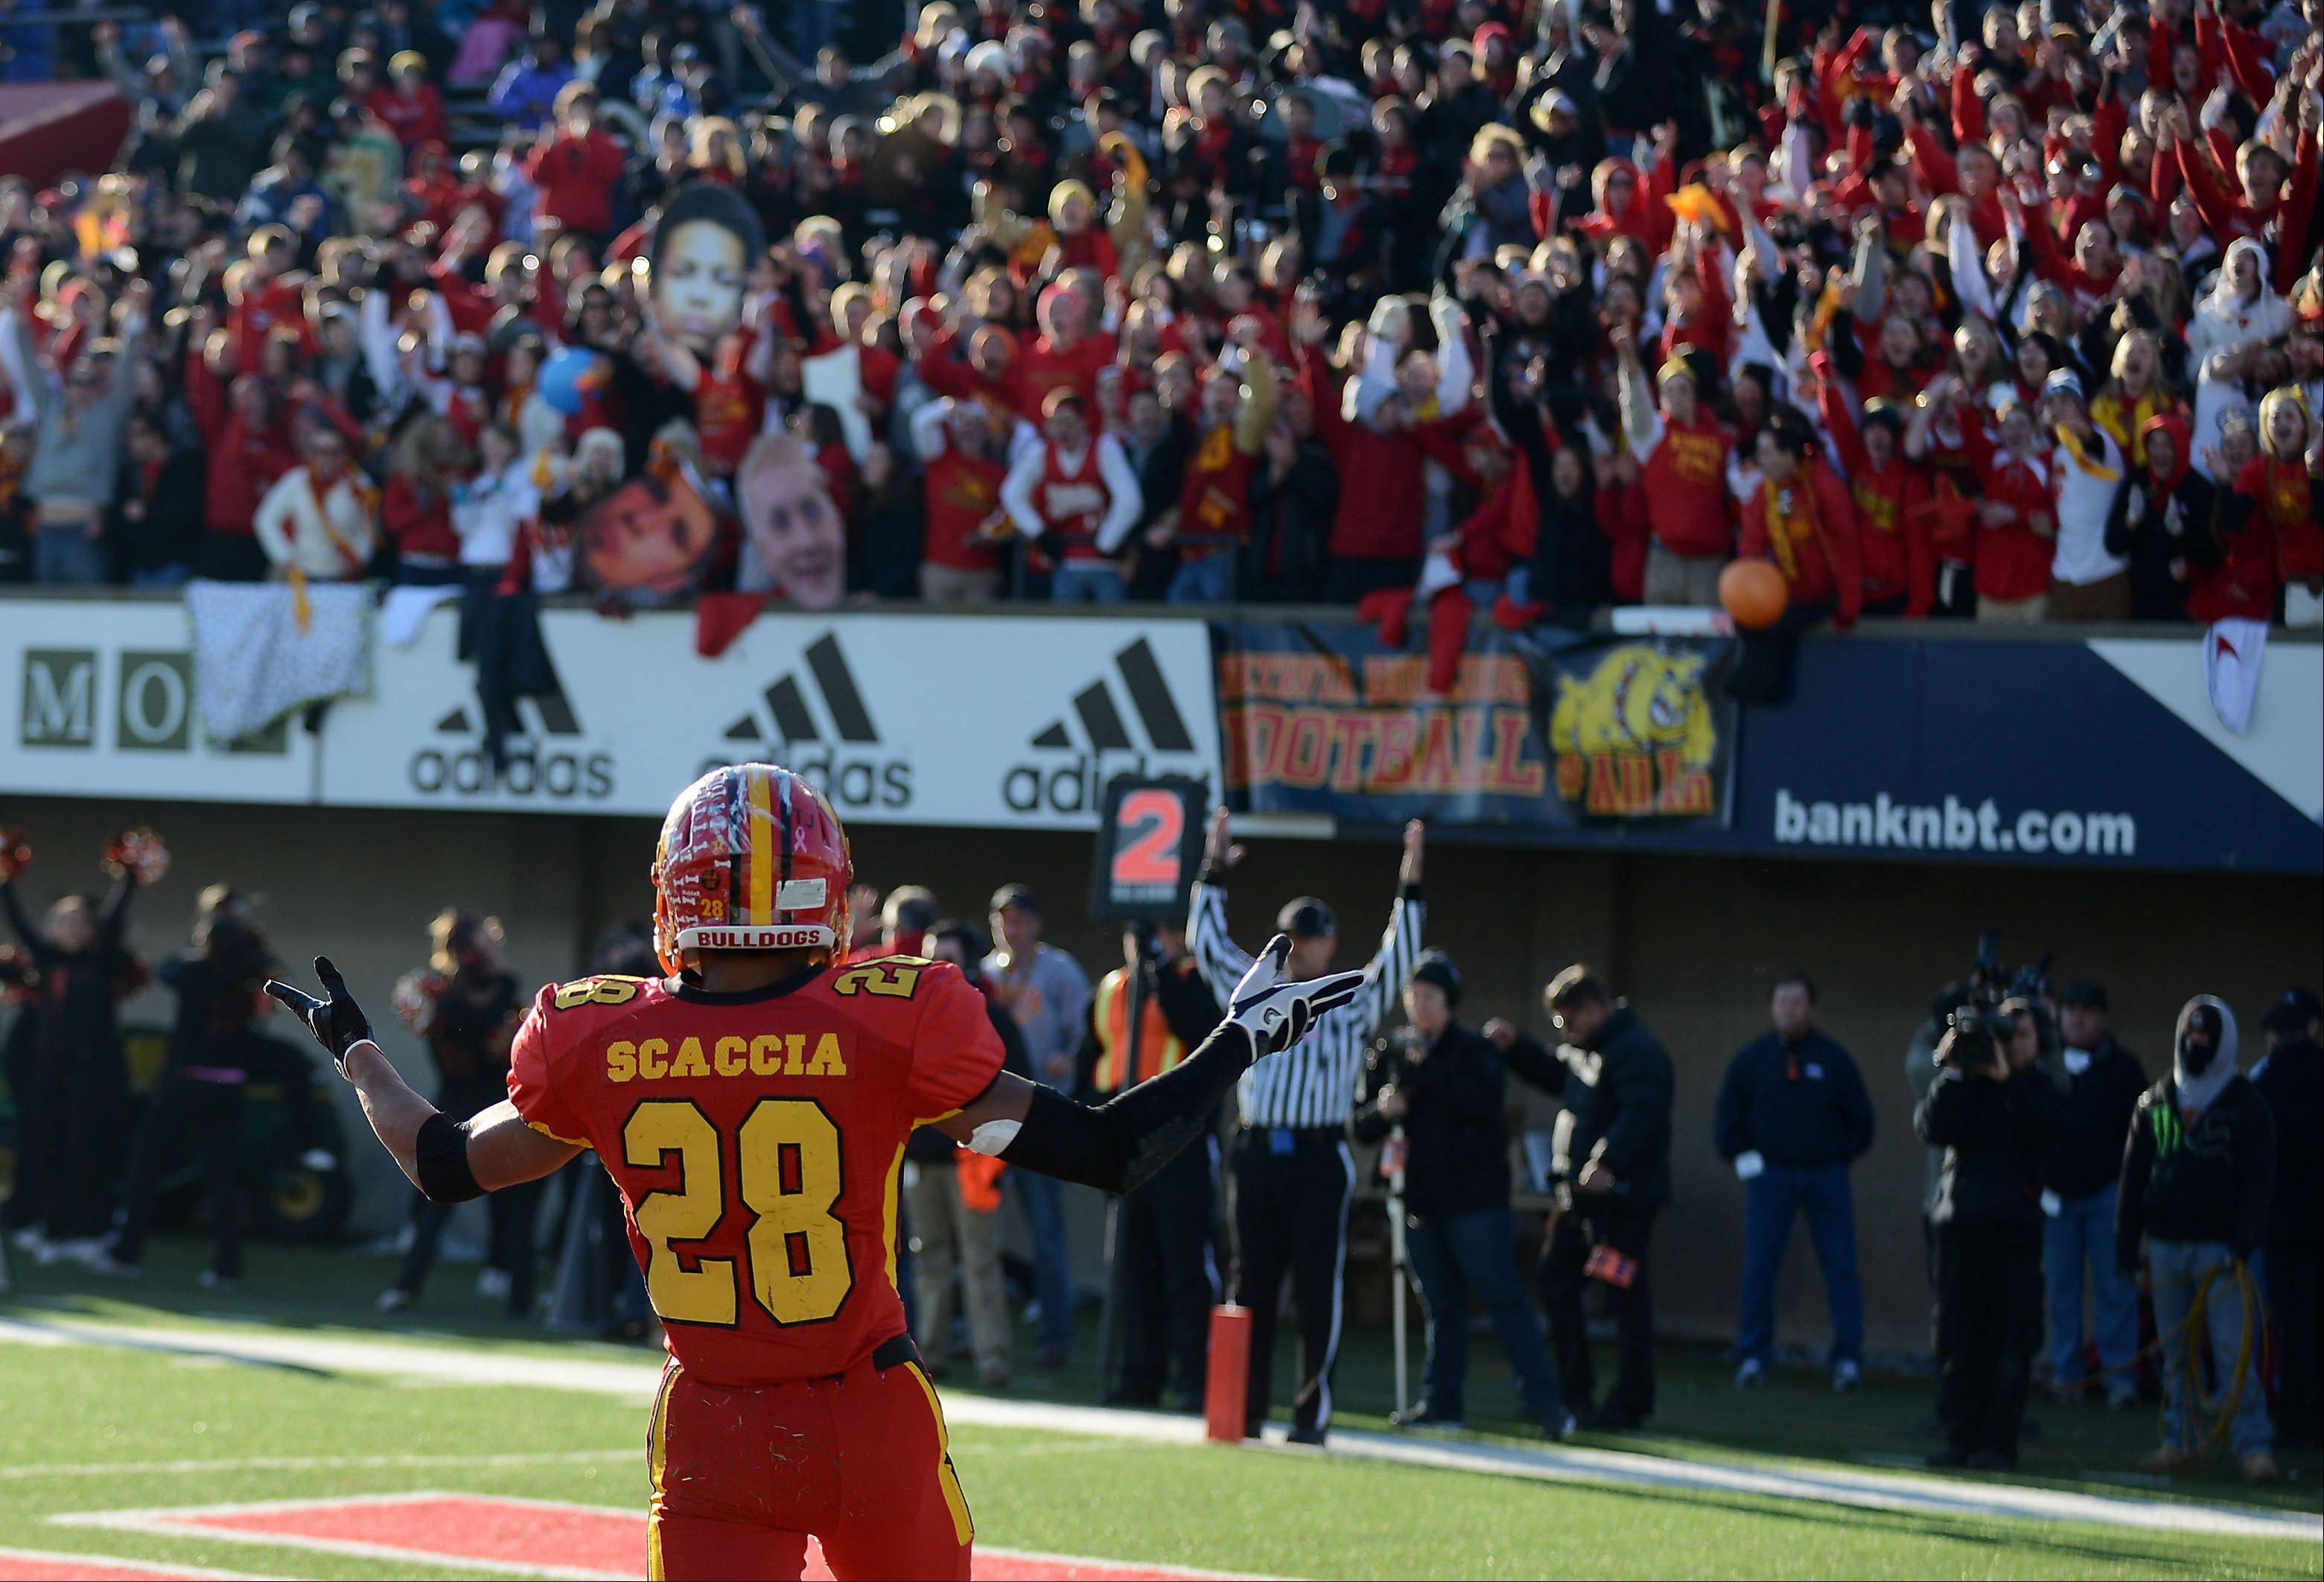 Batavia's Anthony Scaccia (28) plays to the crowd after scoring a first quarter touchdown against Richards during Saturday's 6A championship game in DeKalb.